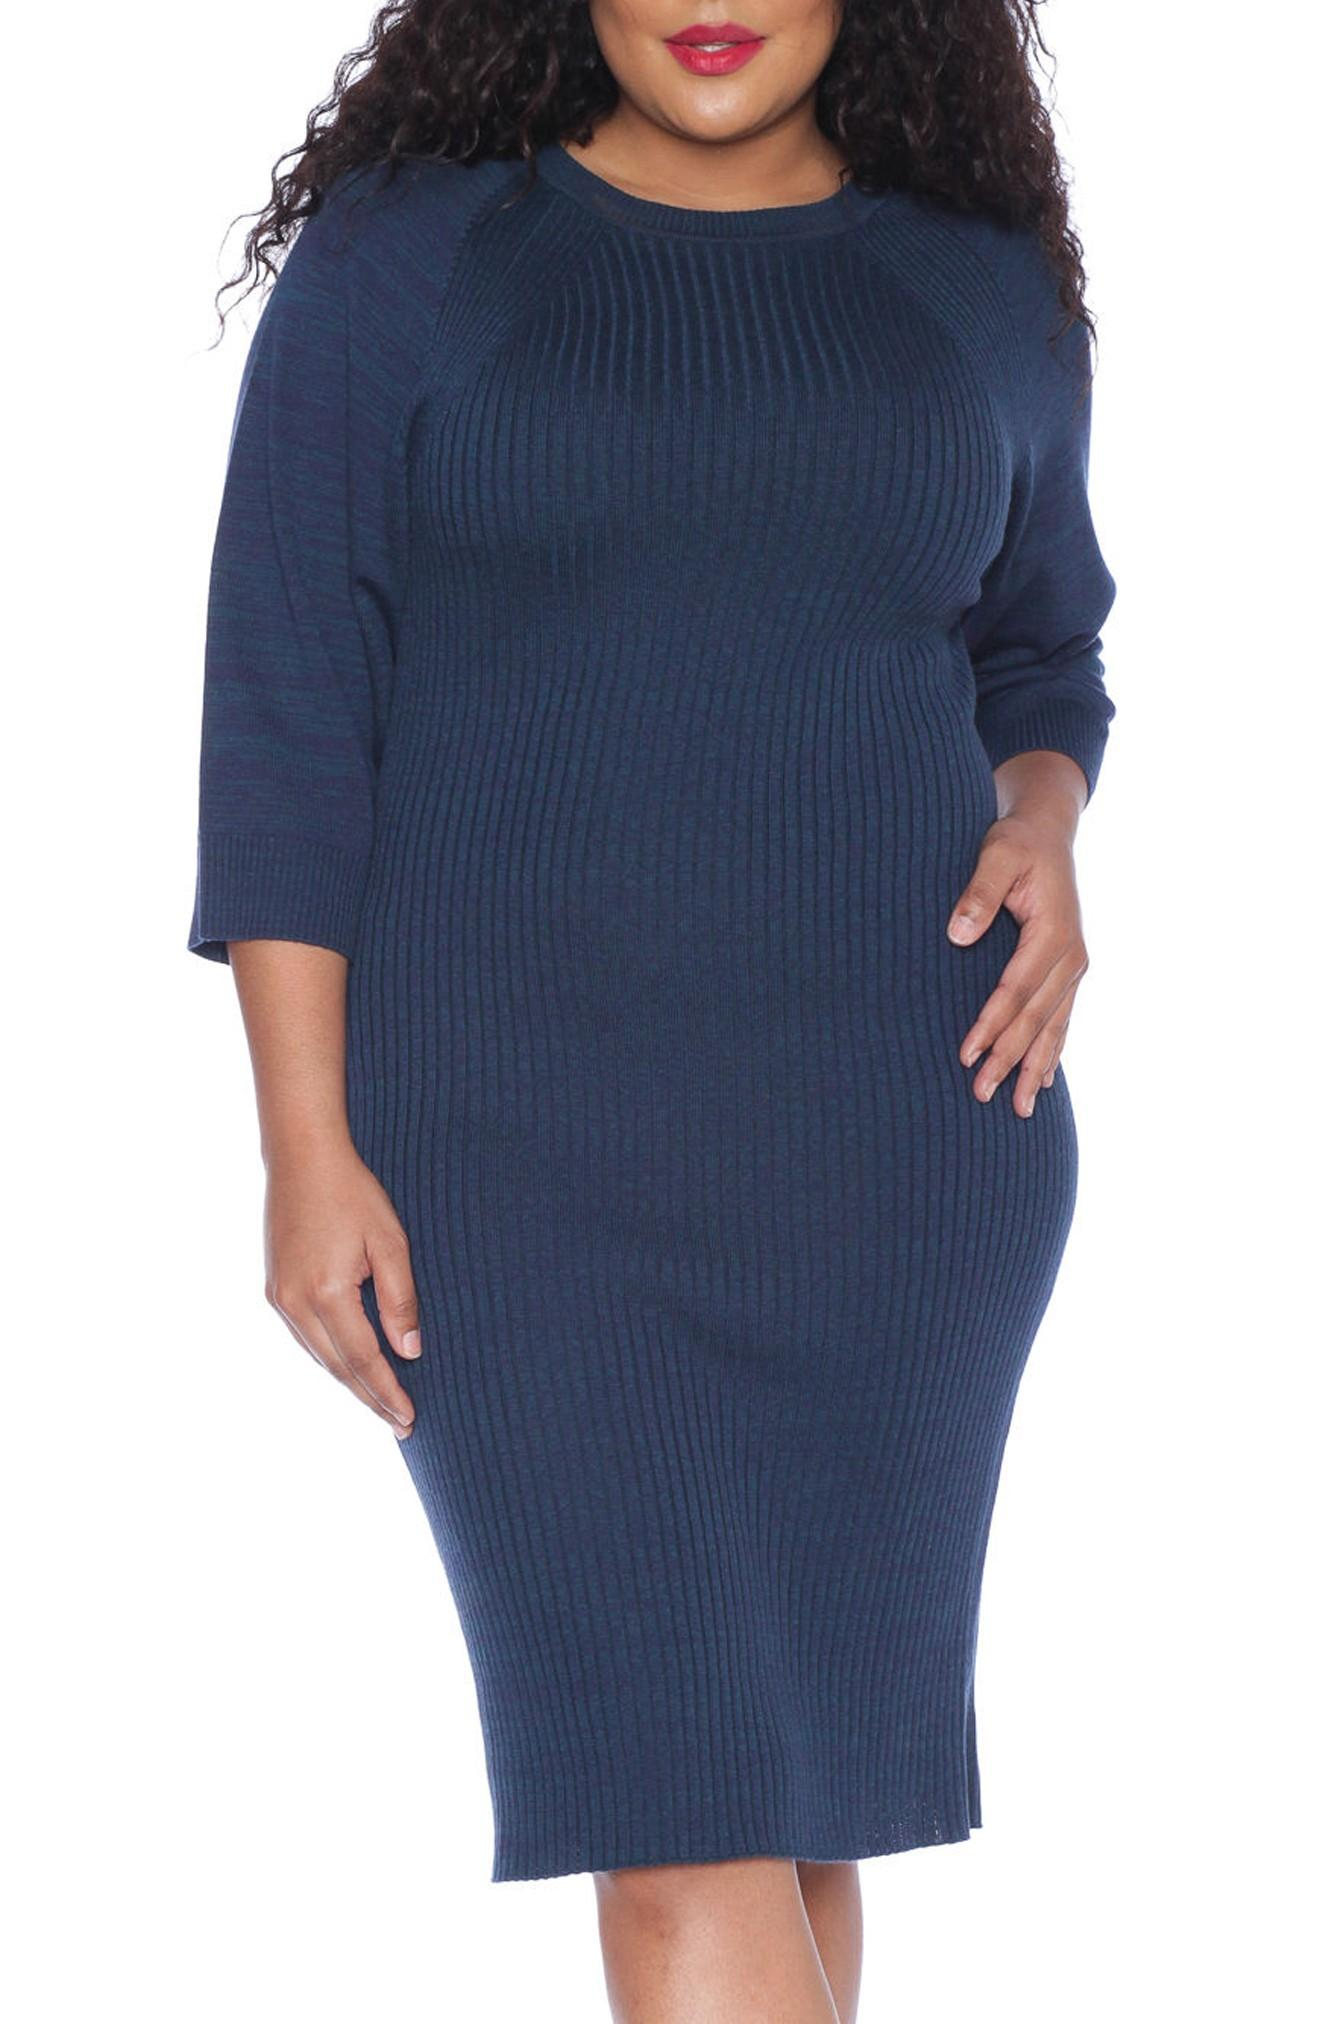 Slink Jeans Ribbed Sweater Dress In Deep Blue Navy